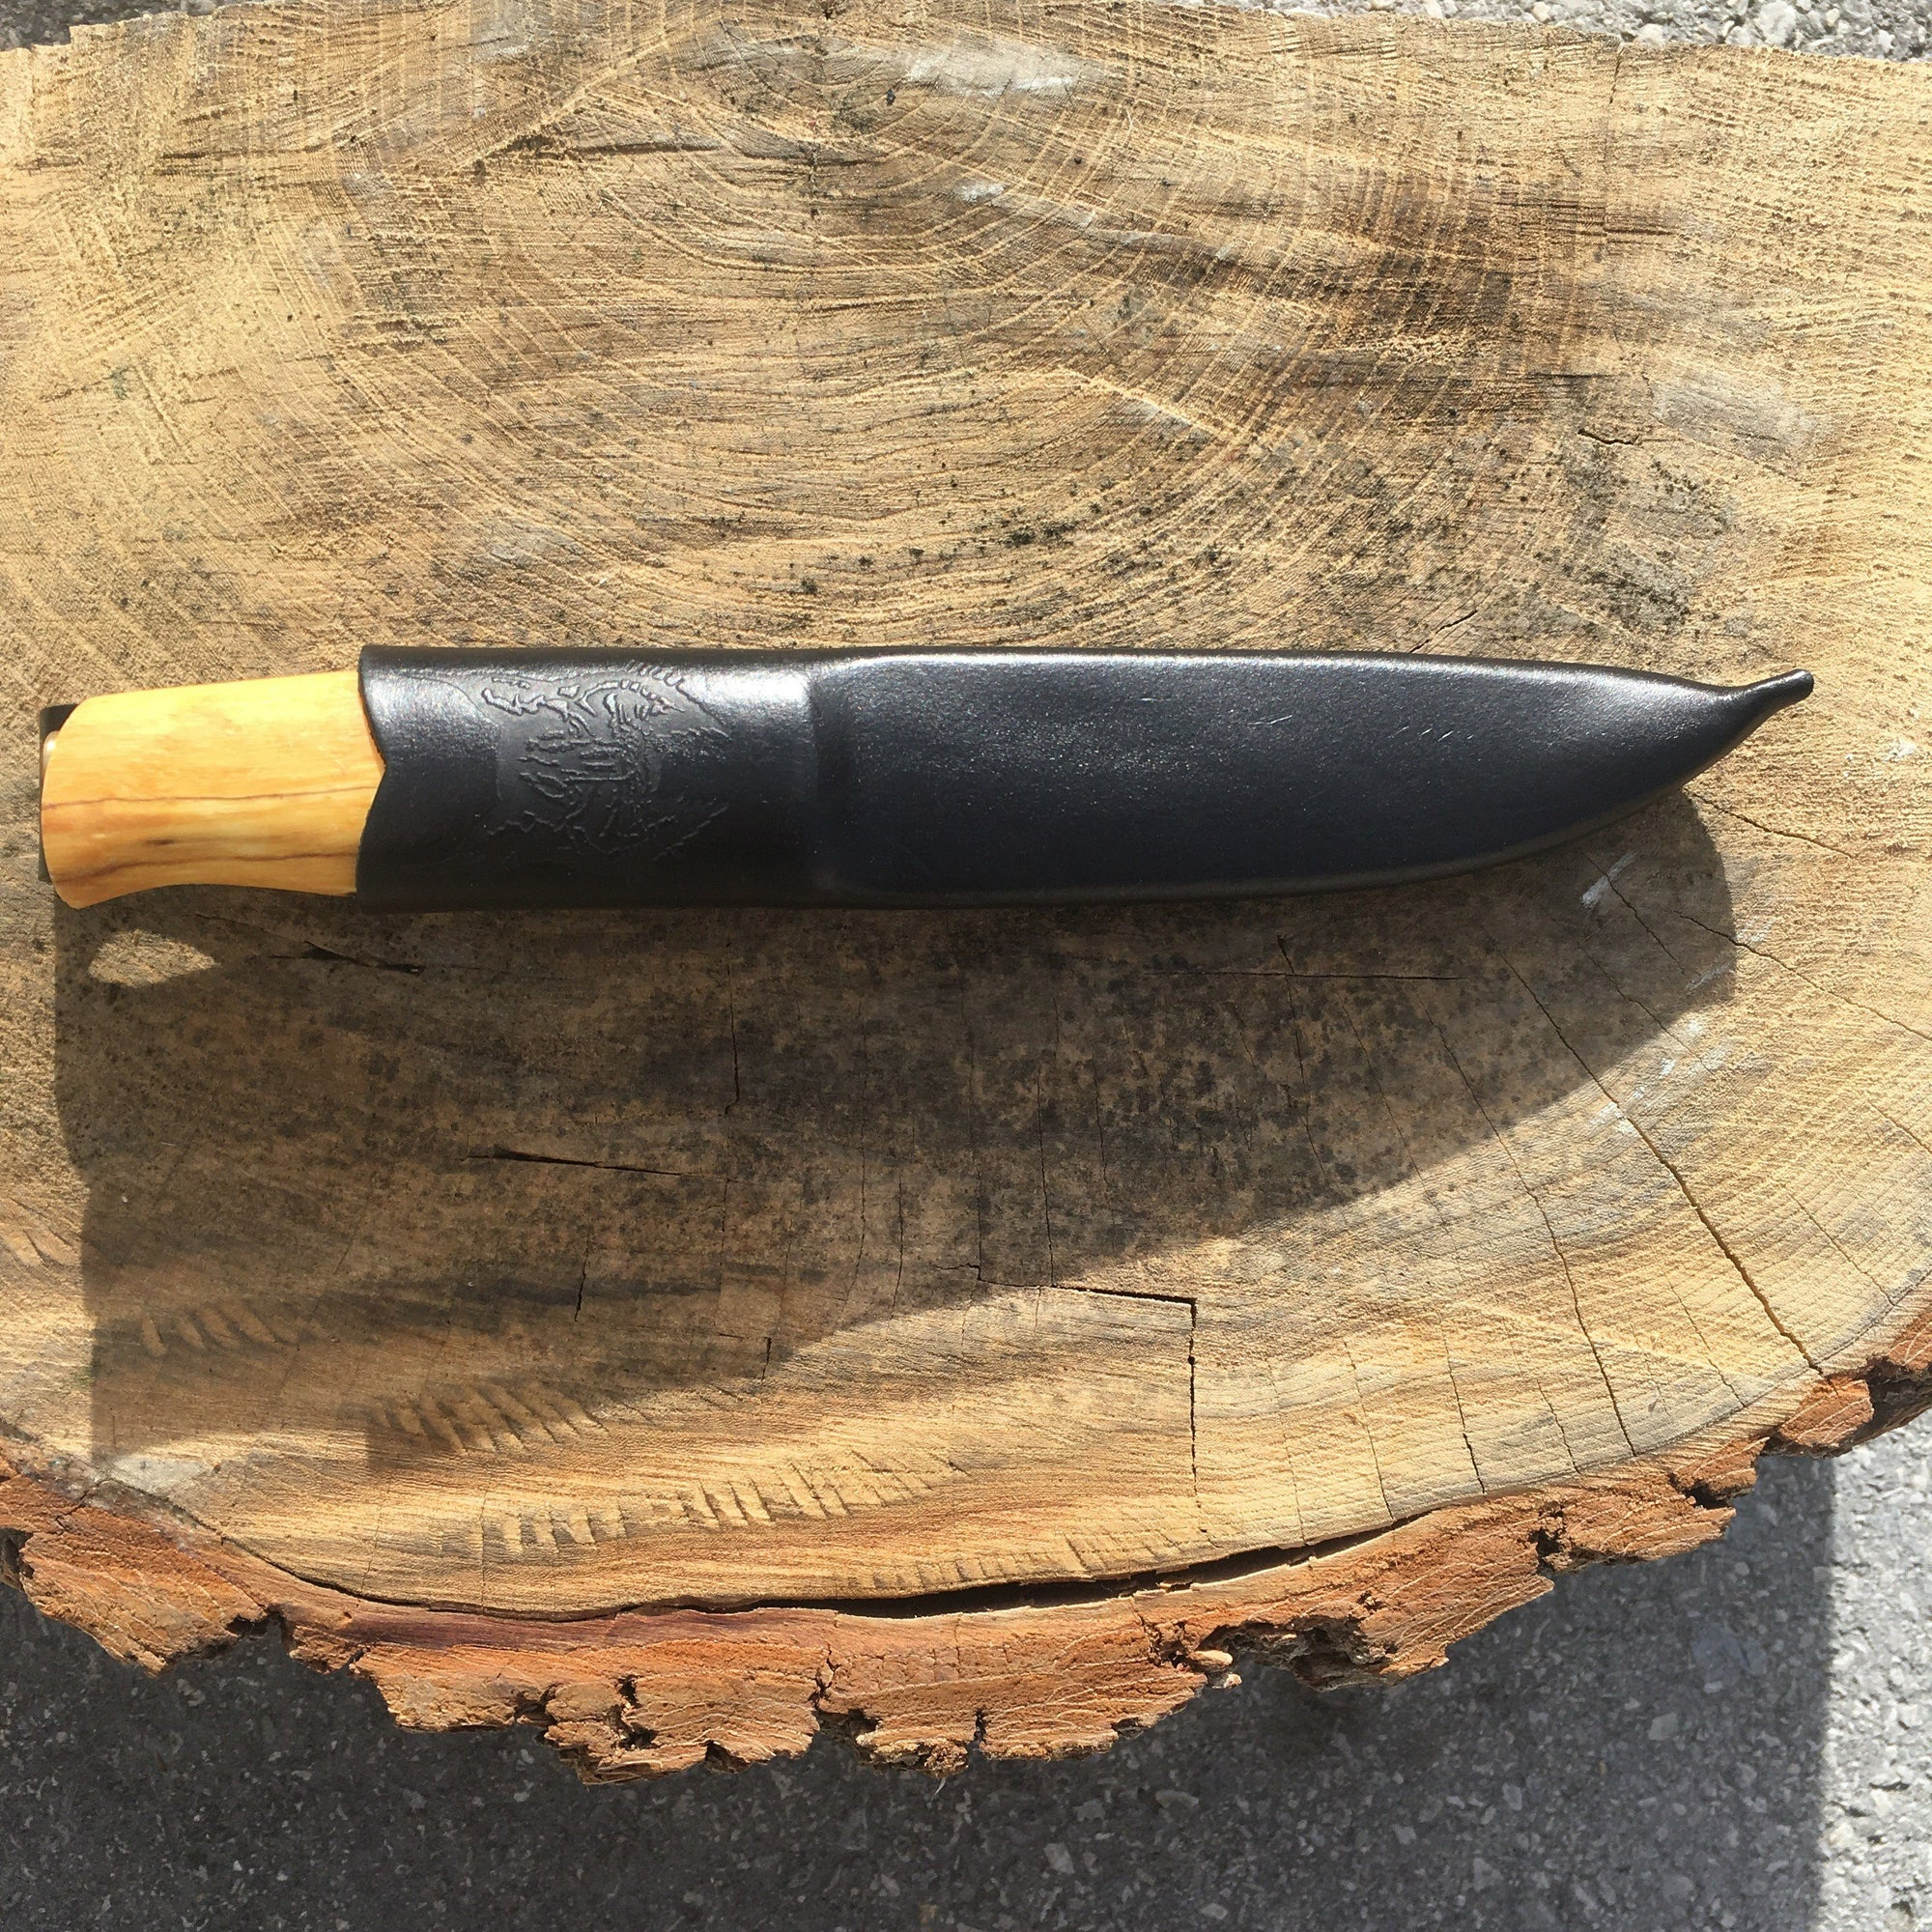 Helle Knives Jegermester 135mm Hunting Knife